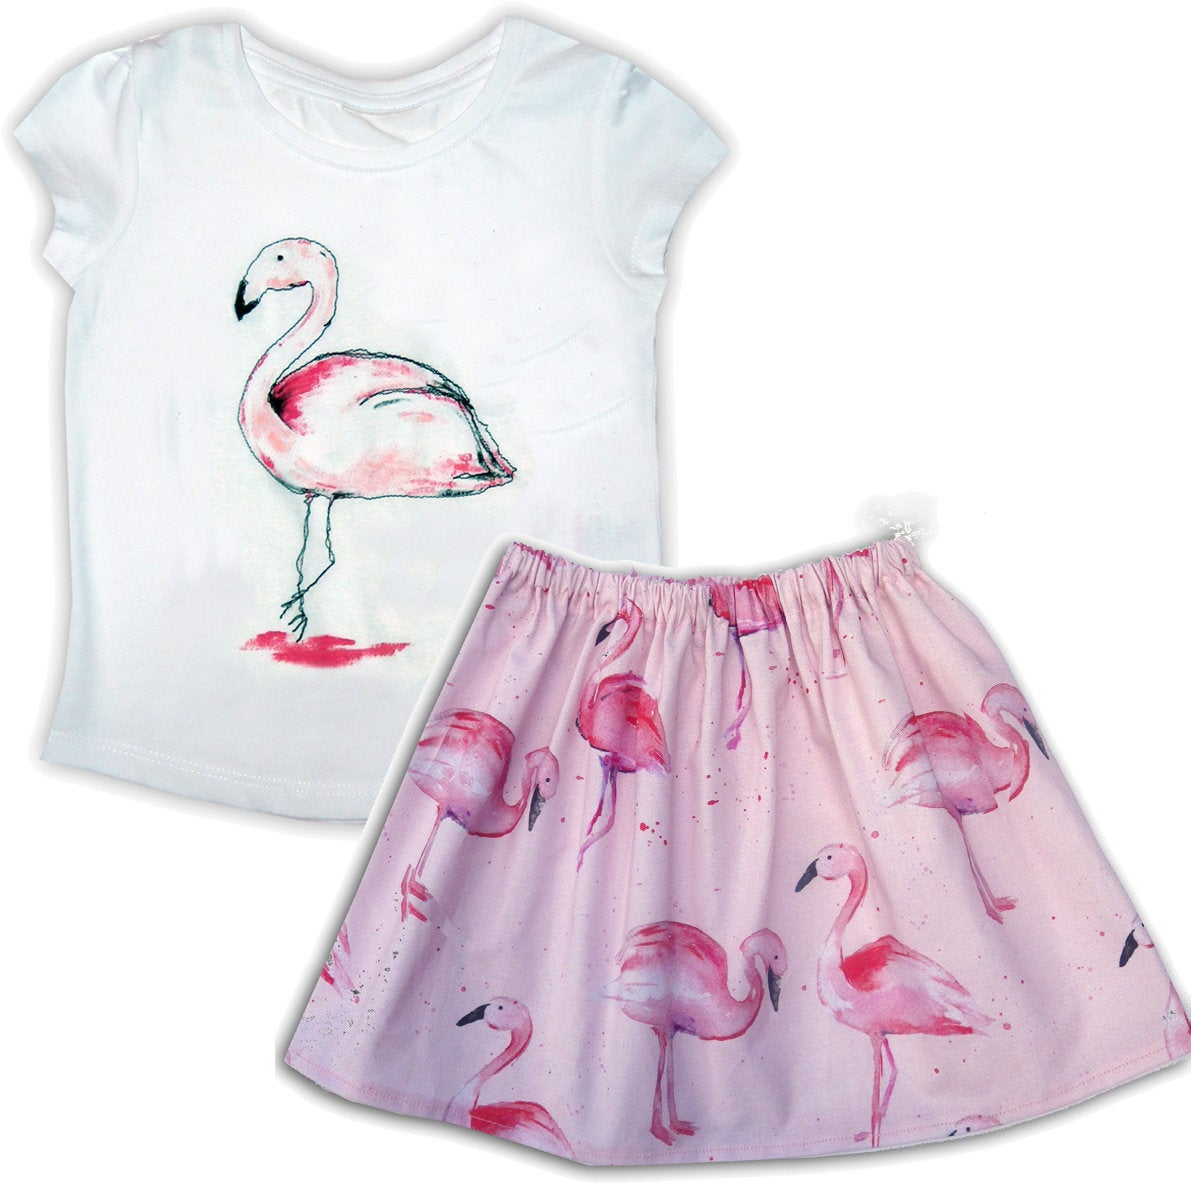 Girl's Flamingo Skirt and T-Shirt Outfit, Kids Clothing, Baby Clothes, Toddler Clothing, Gift for Girls